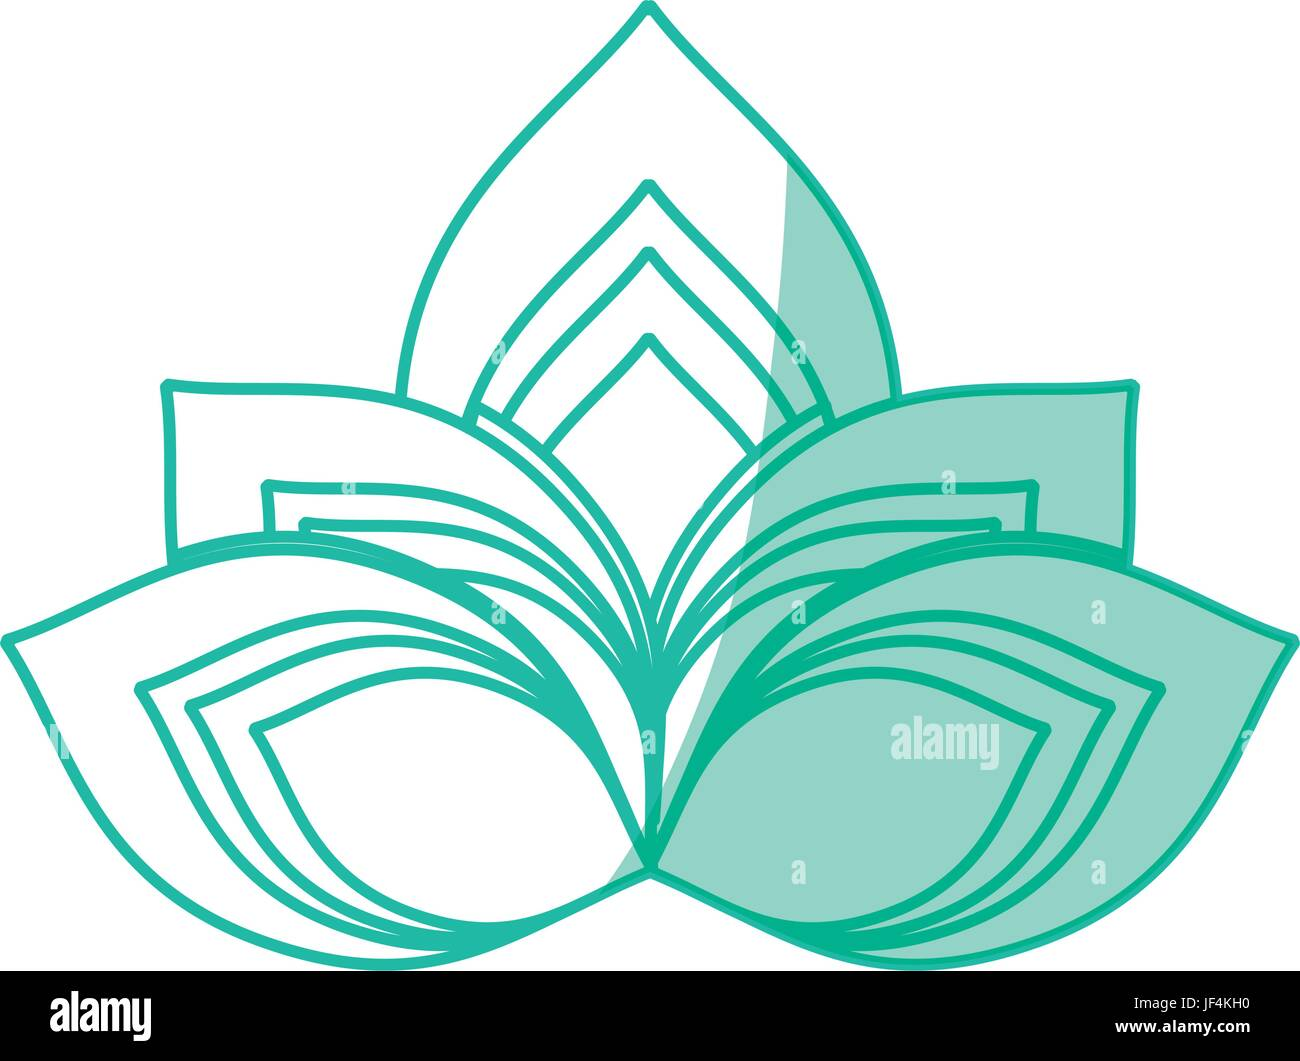 Lotus flower symbol stock vector art illustration vector image lotus flower symbol izmirmasajfo